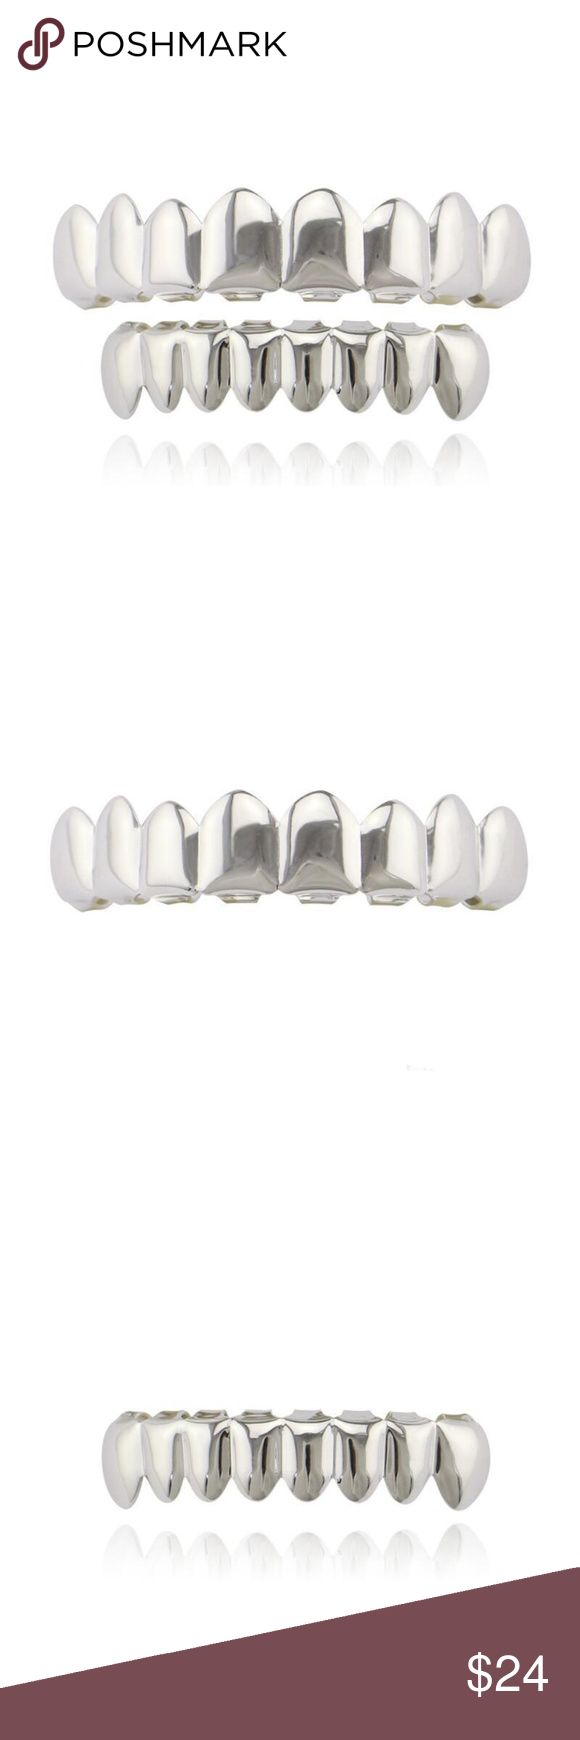 14k White Gold Plated Grillz Set (Top & Bottom) BRAND NEW!! NEVER BEEN WORN OR USED Top & Bottom Grillz SET Grillz are designed for Bottom & Top teeth and is one size fits all. Includes one silicon fixing bar to keep your grill in tight. COMES WITH EASY TO FOLLOW INSTRUCTIONS AND READY TO WEAR IN MINUTES. Each grill can fit any teeth no matter how straight or crooked your teeth are. you can wear the grillz or remove it easily primobling Accessories Jewelry